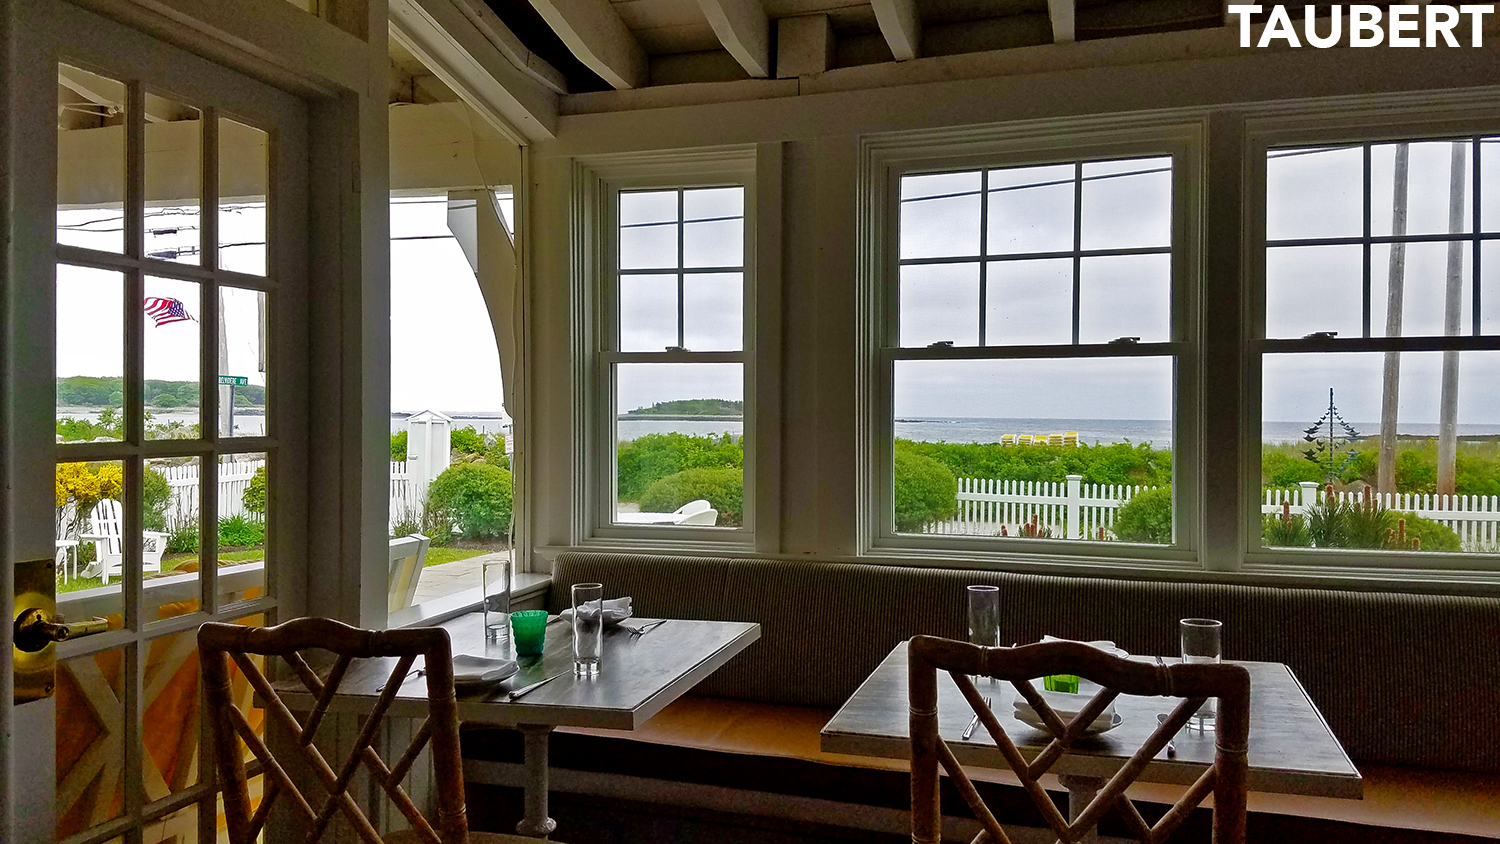 View of Goose Rocks Beach from the dining roomNearby Ogunquit   Tides Beach Club in Kennebunkport   Ogunquit  . Porch Dining Room Kennebunkport. Home Design Ideas